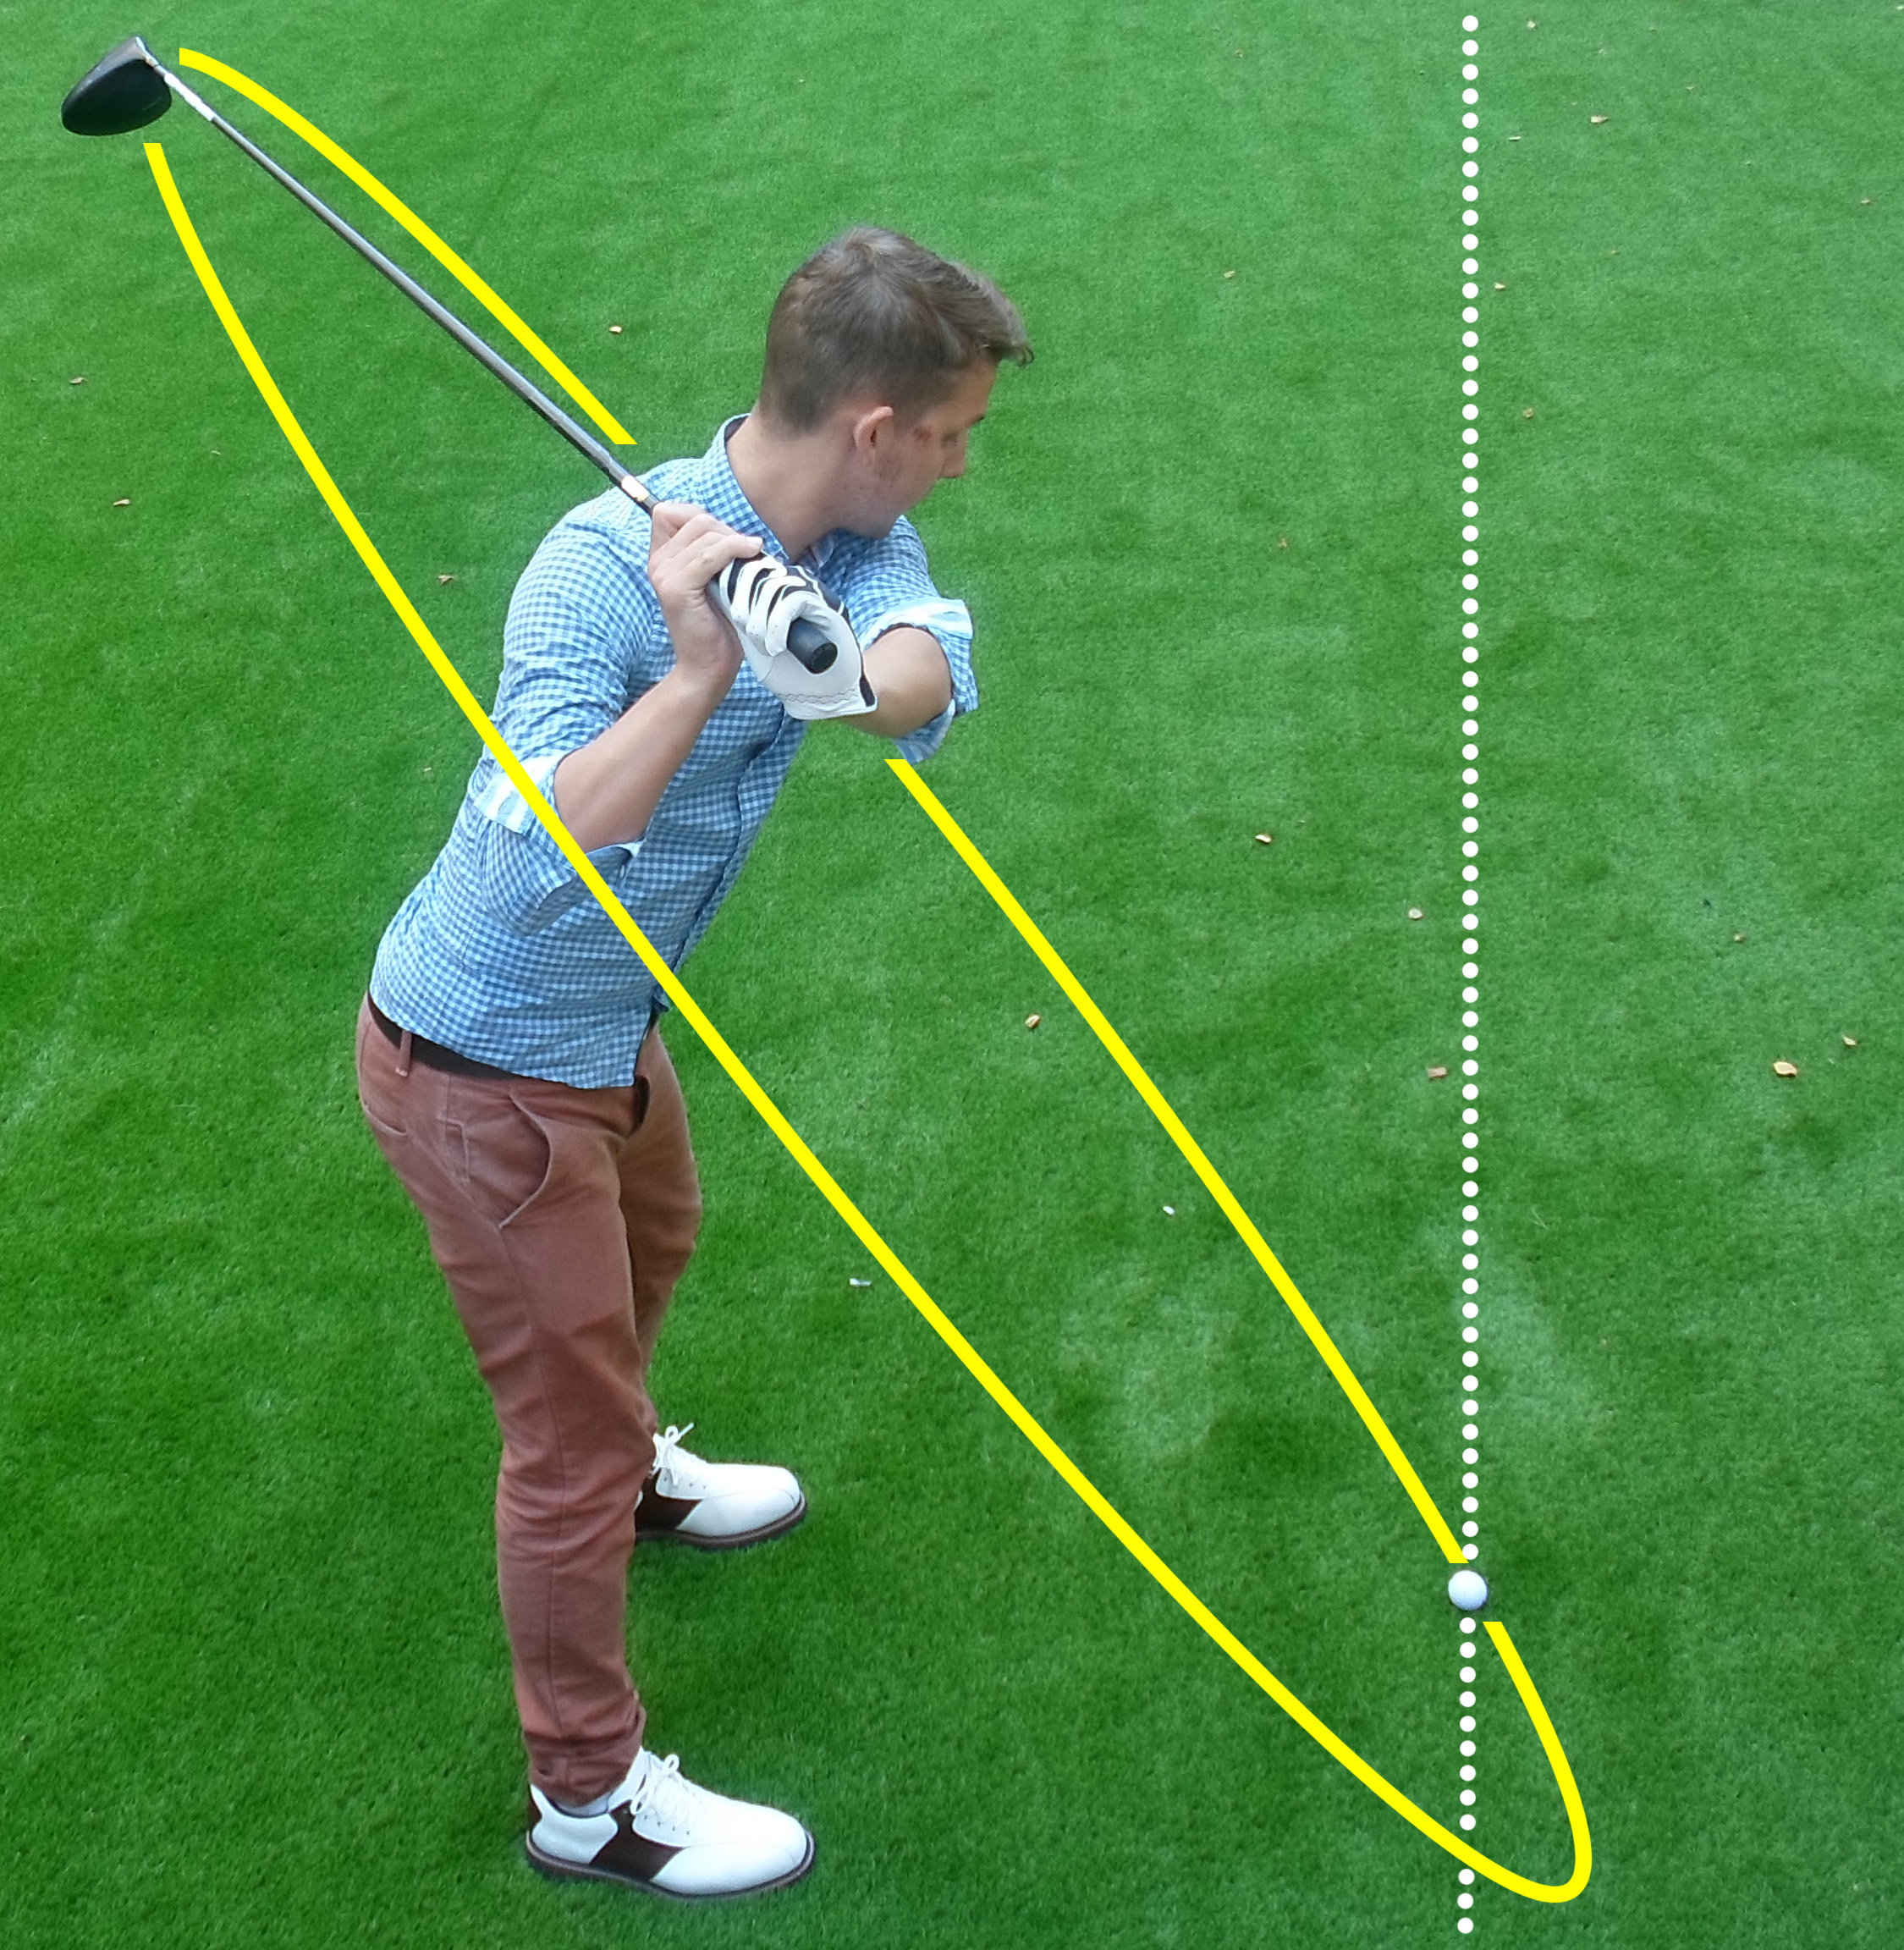 Fig.2 - To hit a fade your swing path should travel from outside the target line then hit across the ball (click to enlarge)